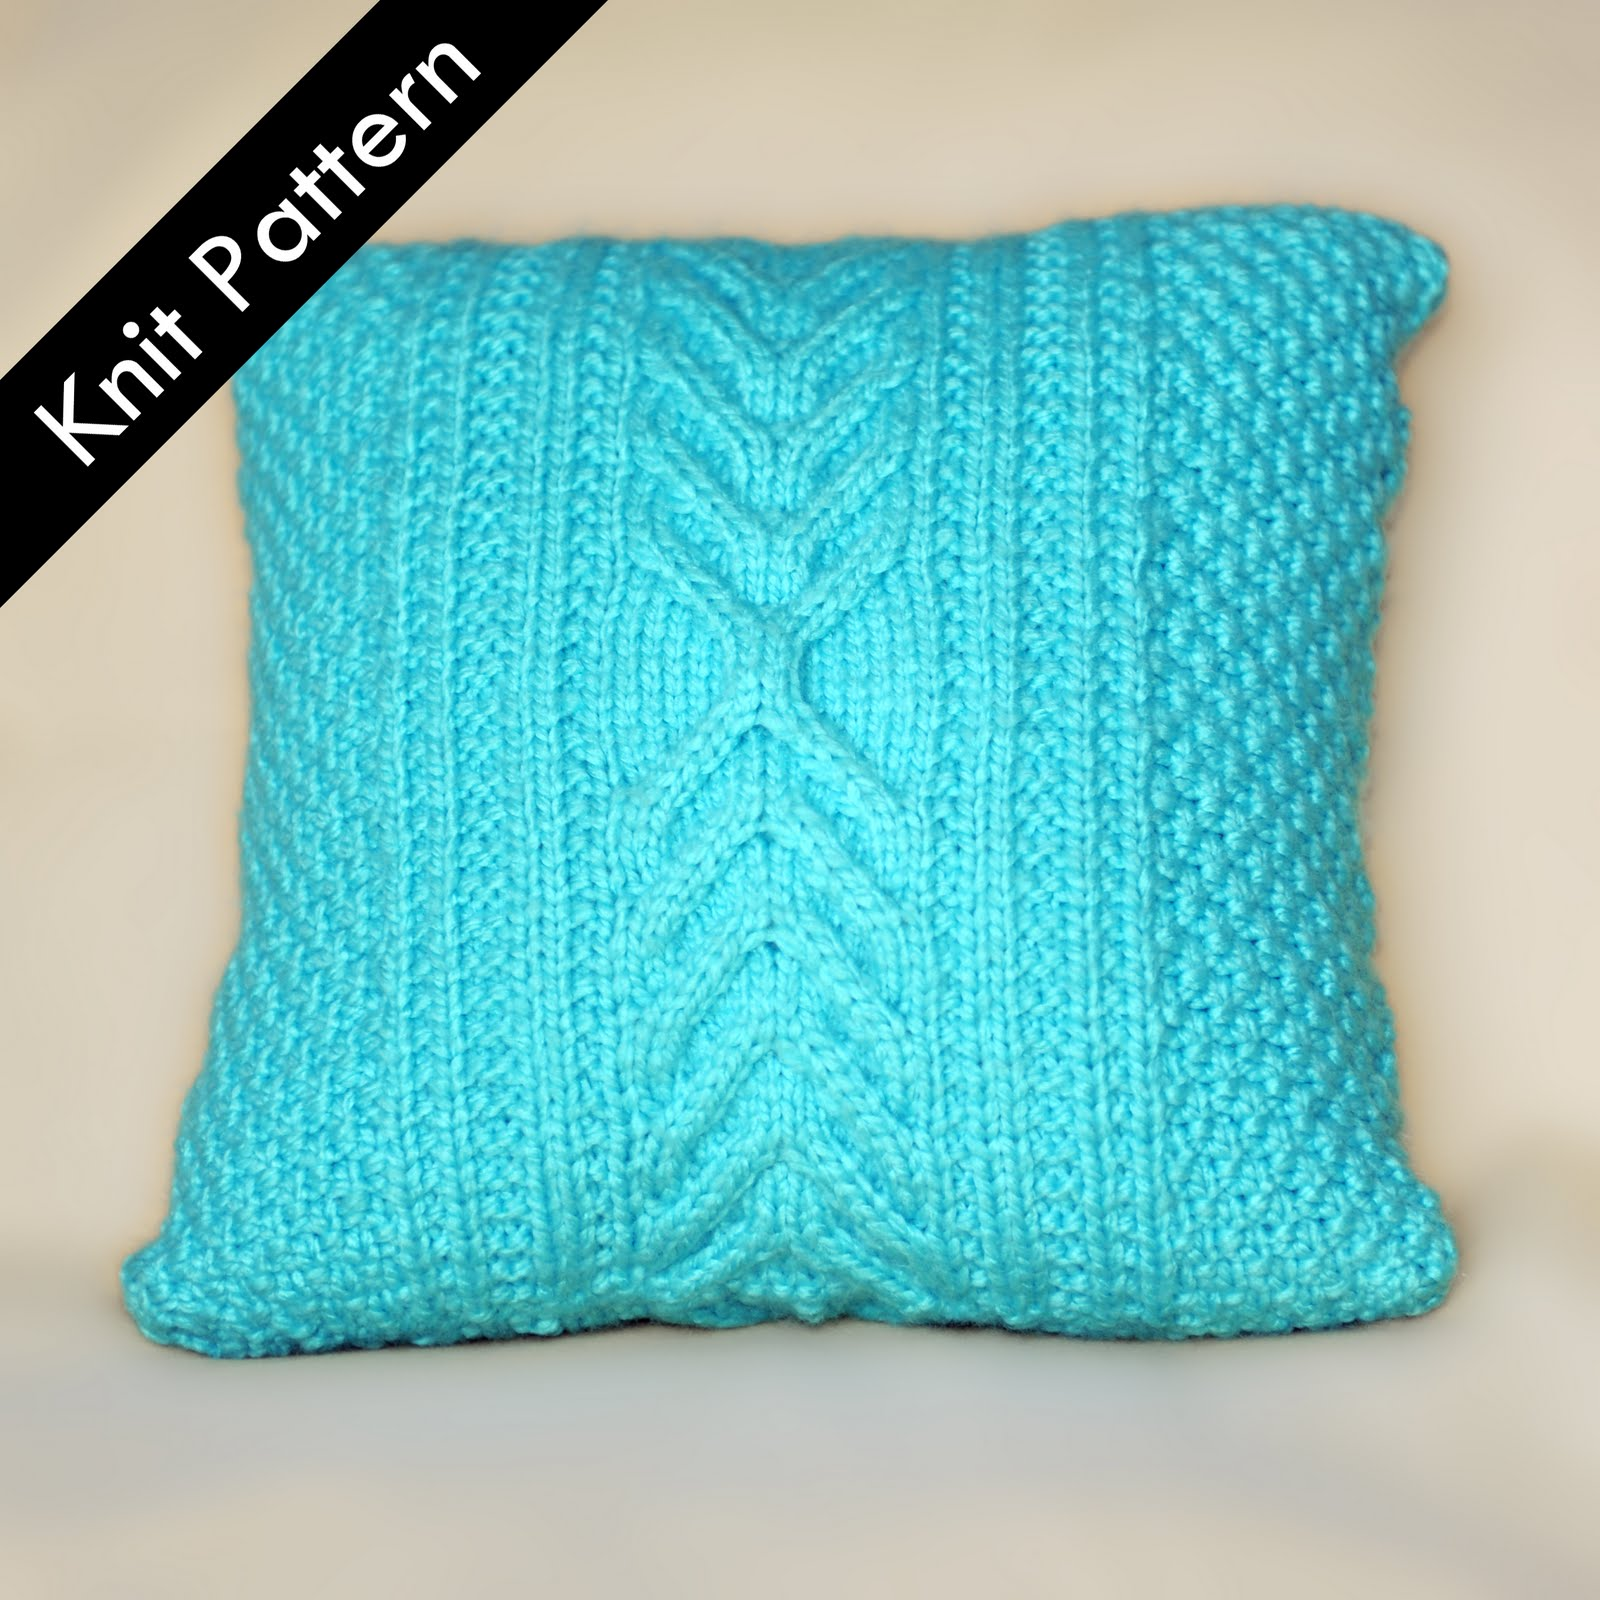 KNIT PILLOW PATTERNS - FREE PATTERNS